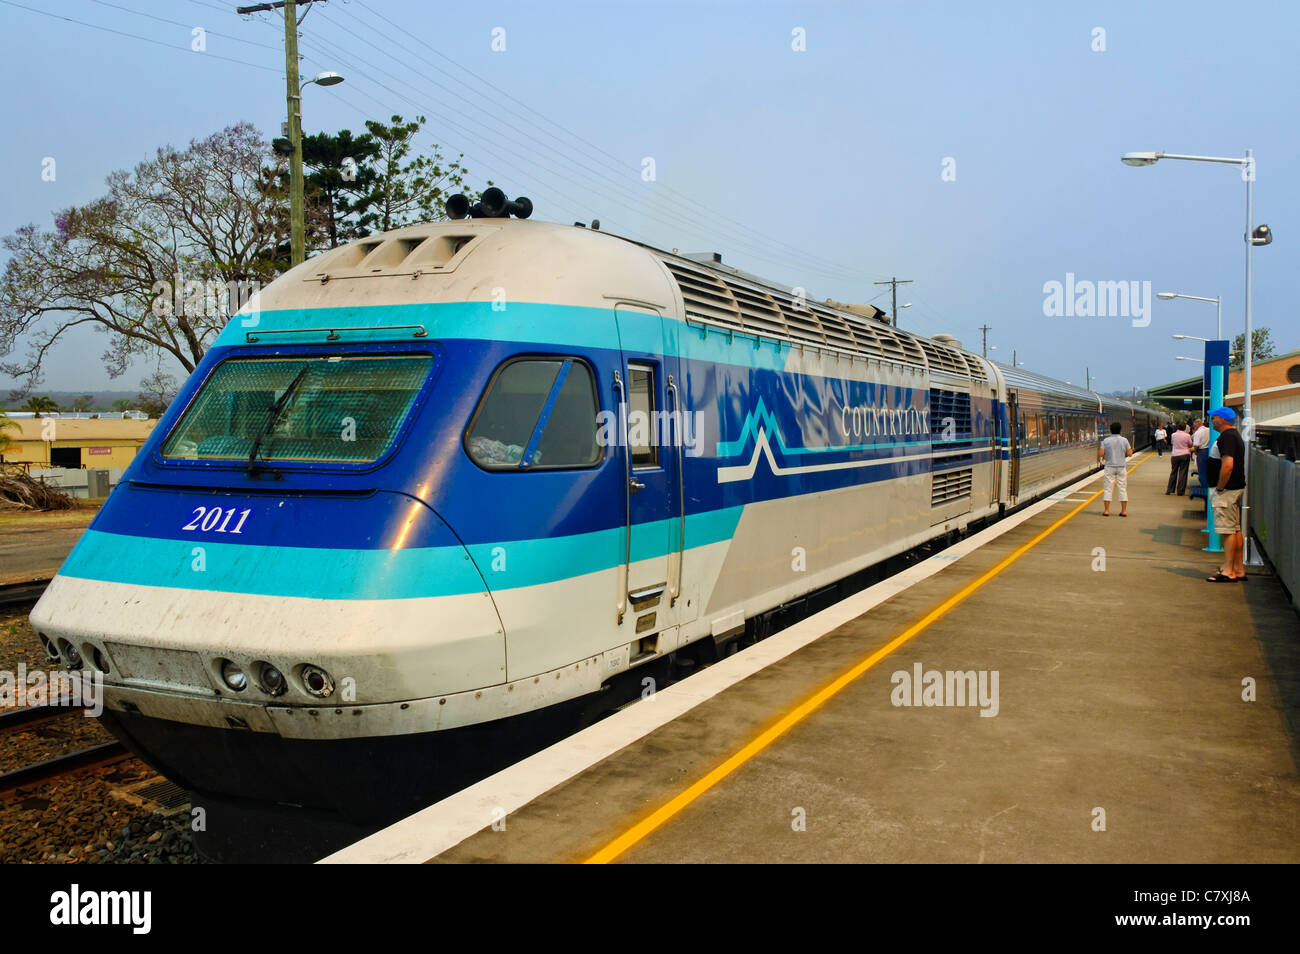 Streamlined long-distance train - Stock Image